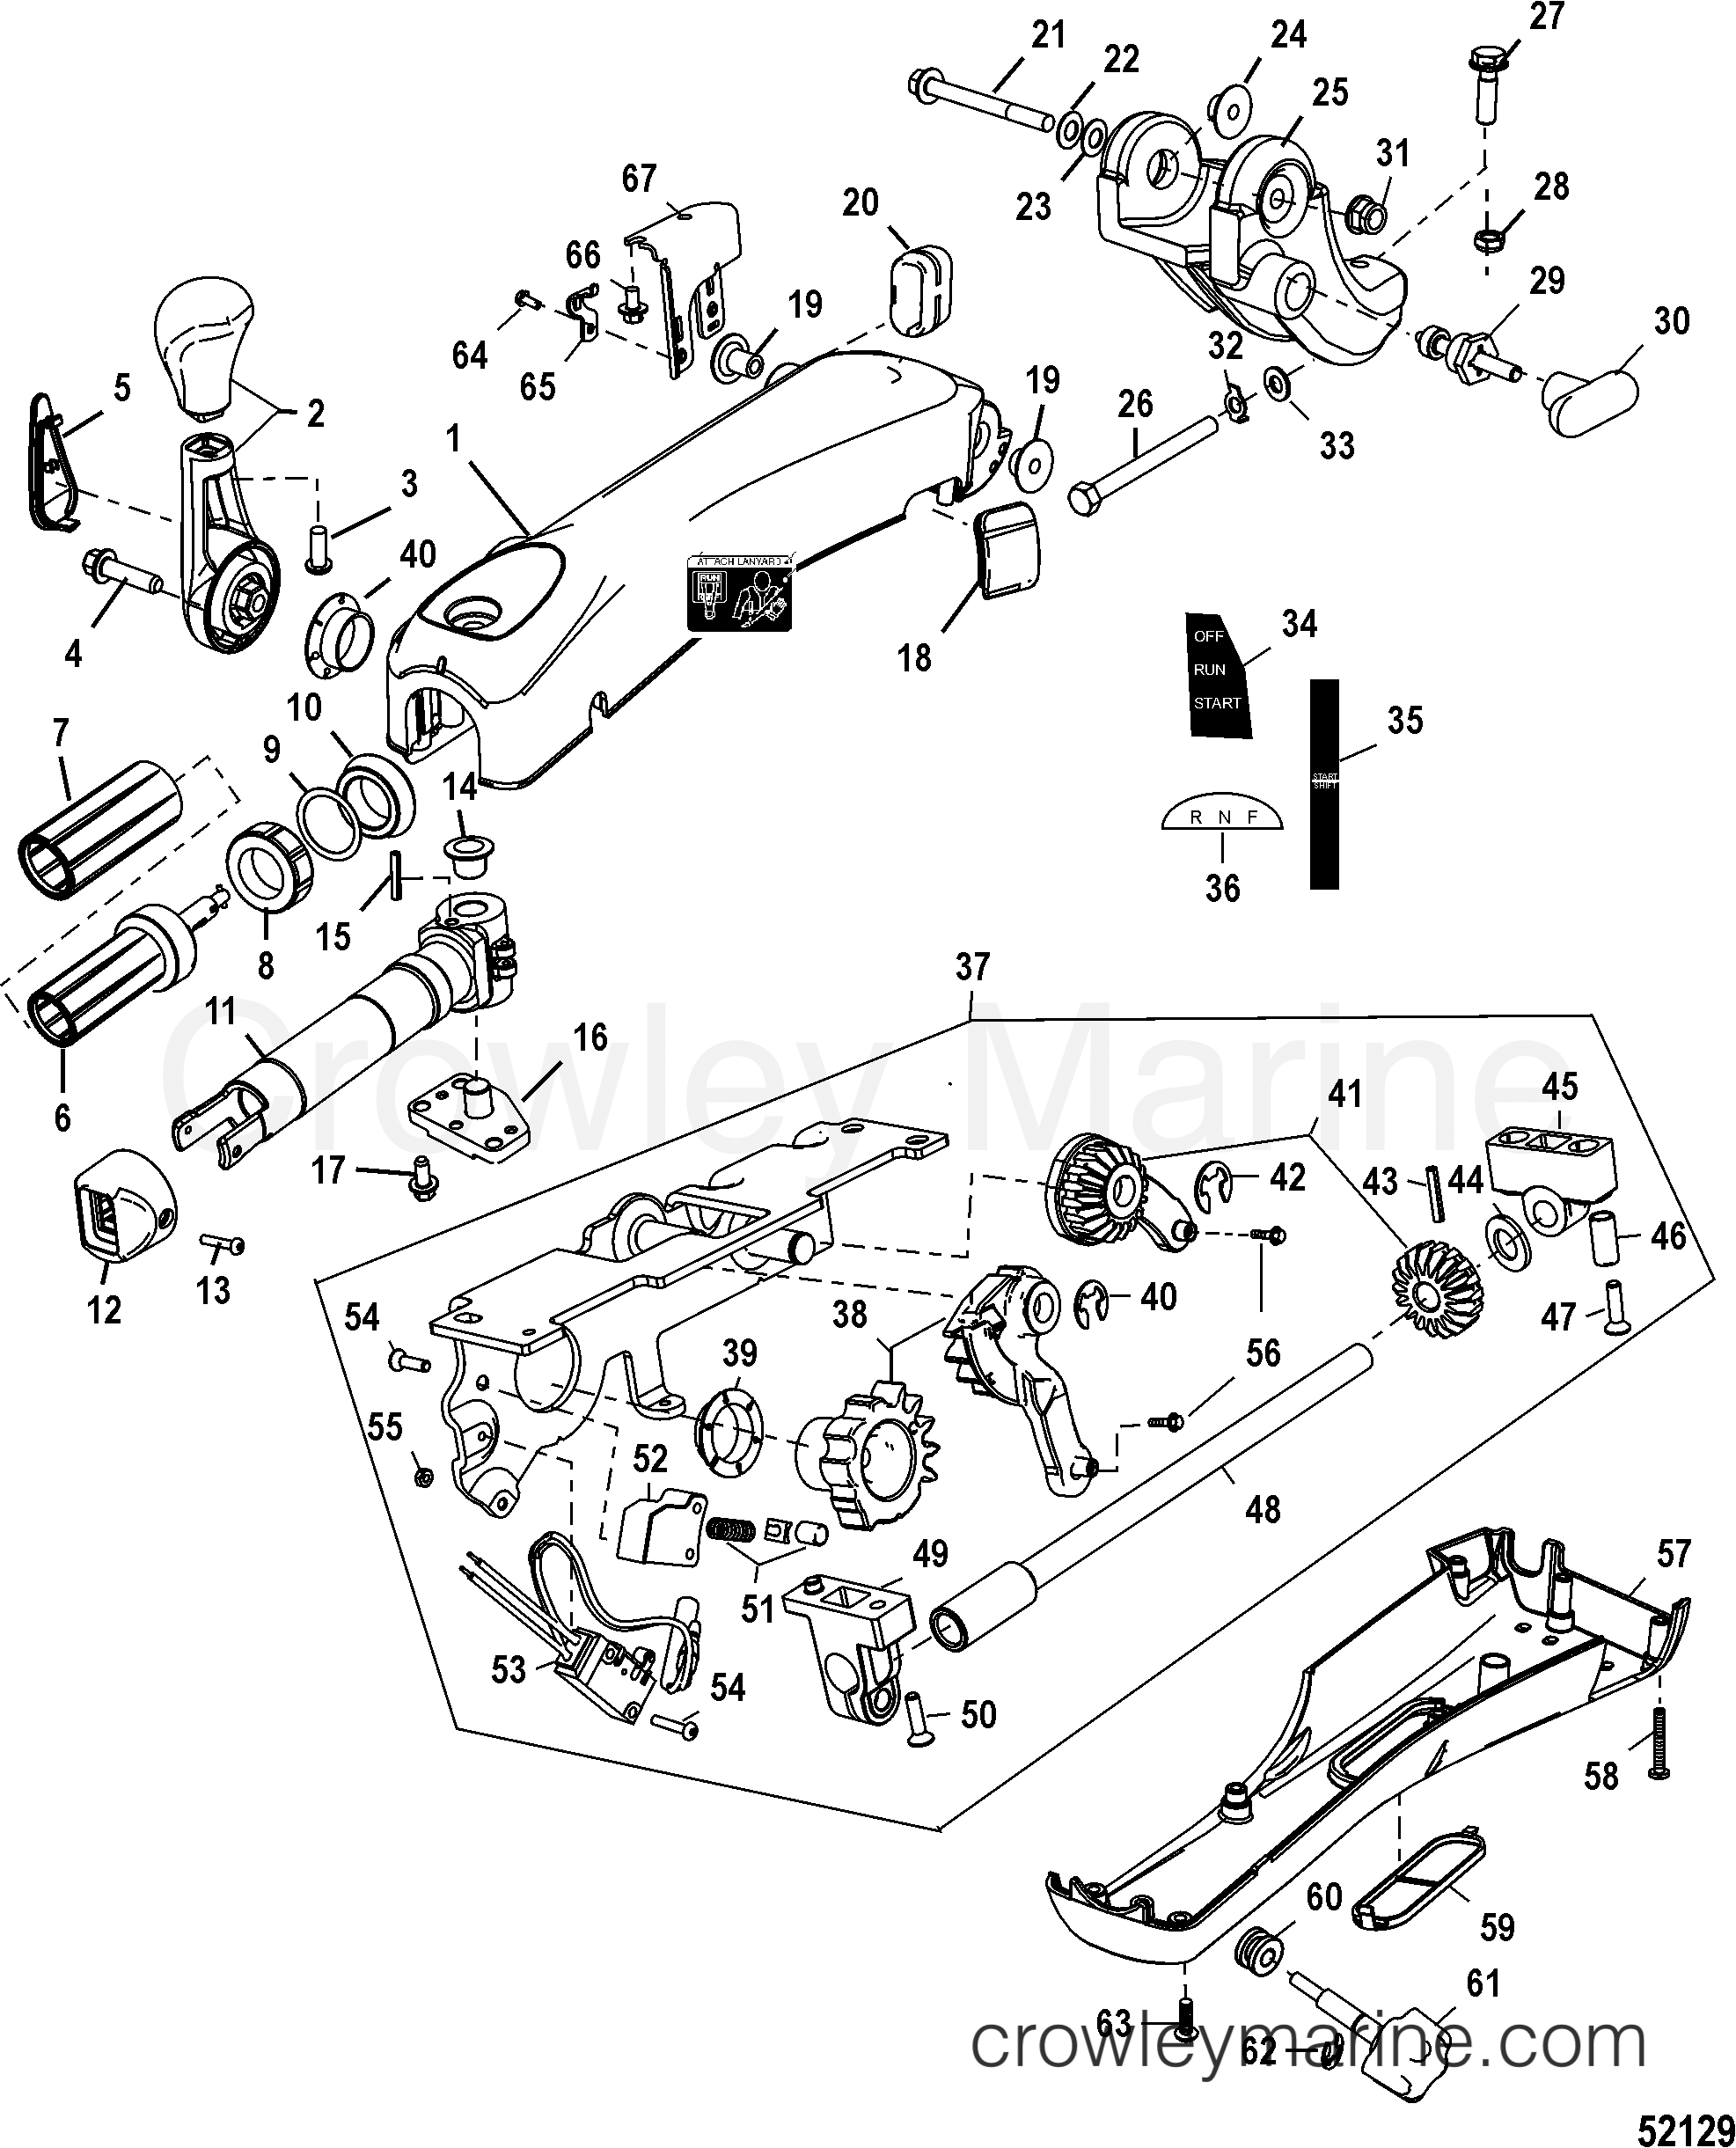 hight resolution of various years rigging parts steering systems and components 1994 1994 up tiller handle